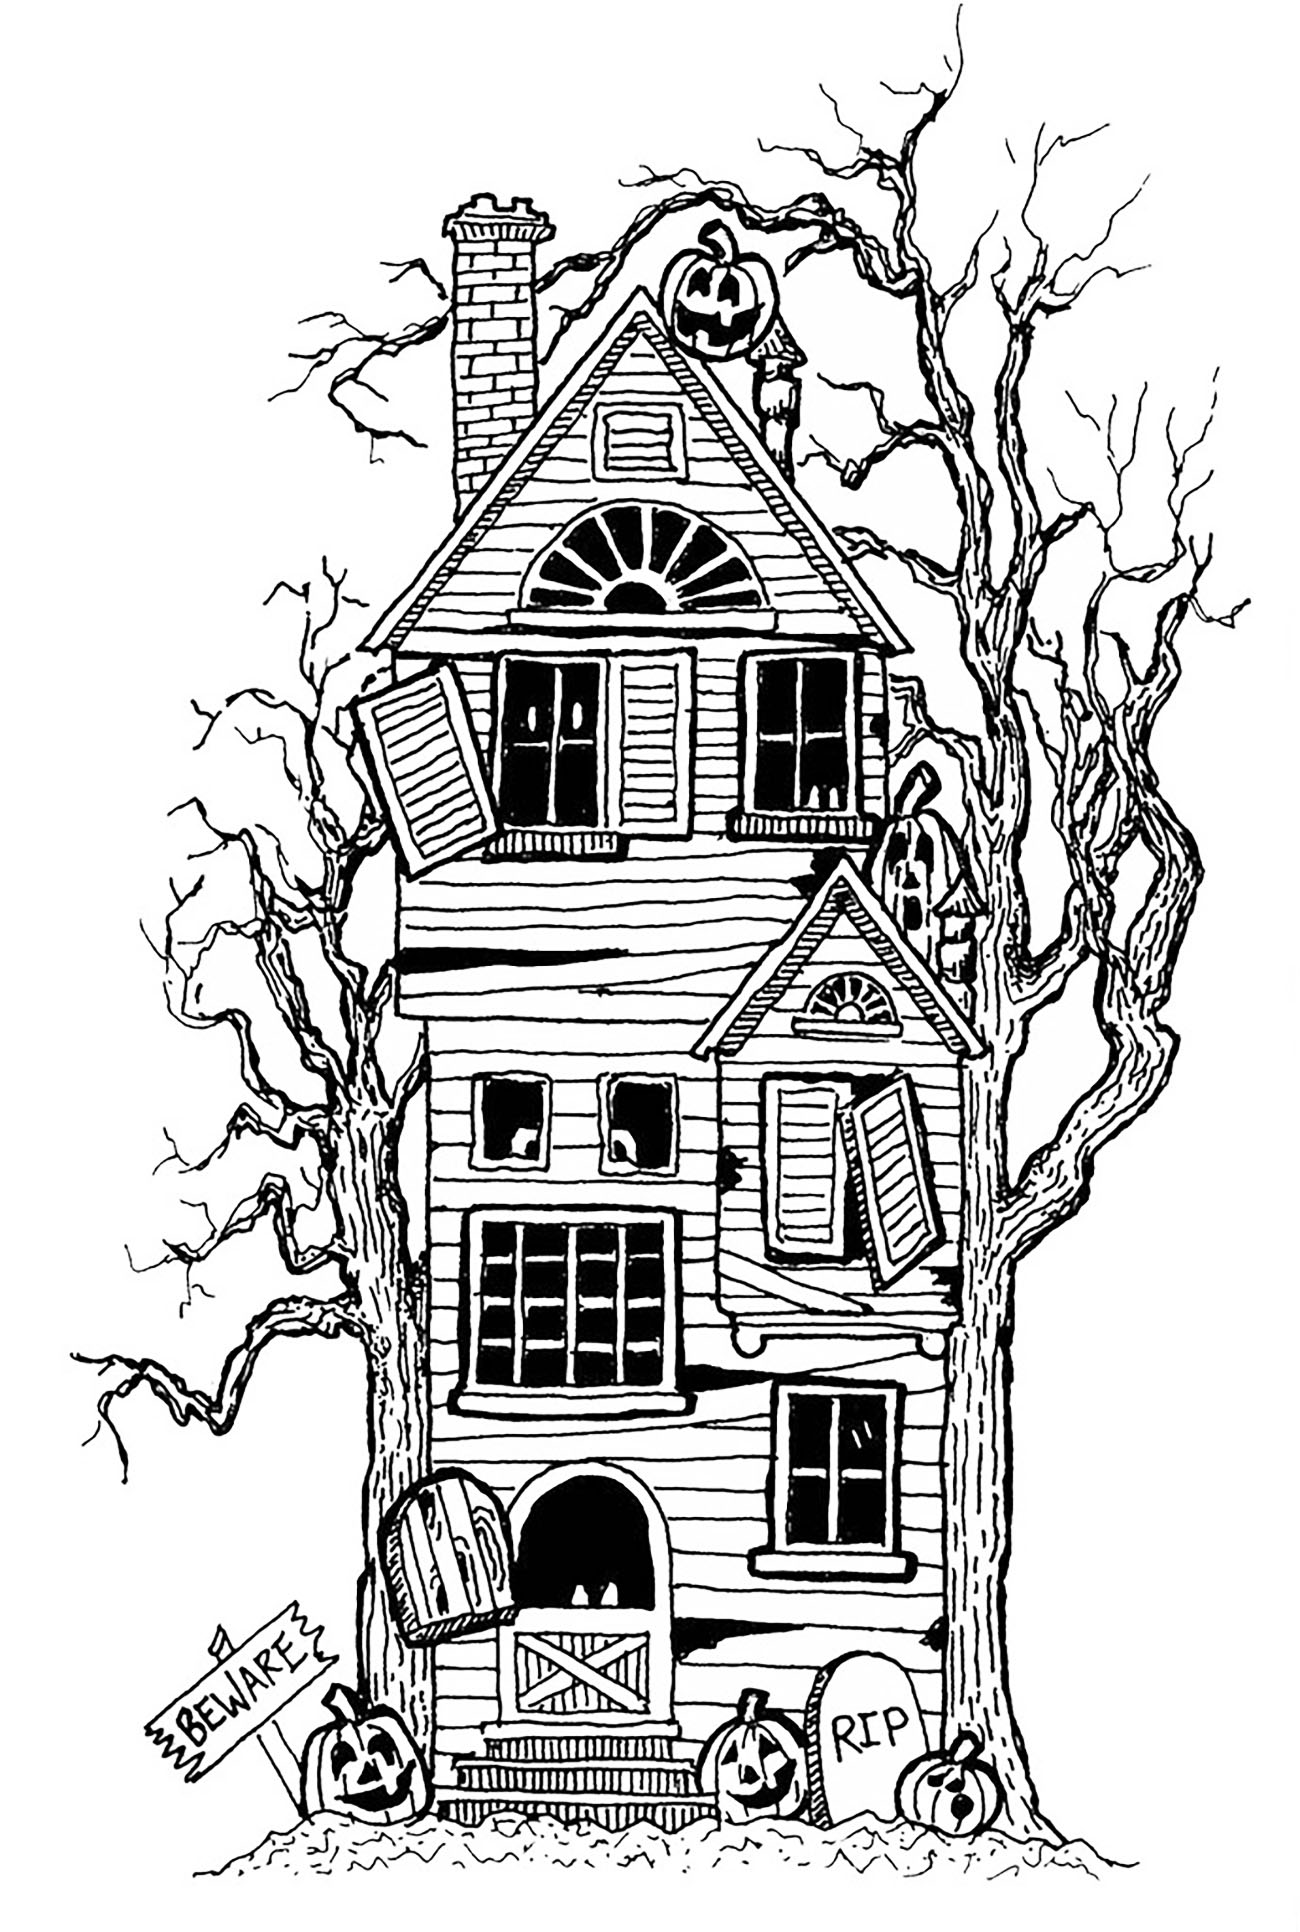 Coloring pages for halloween coloring contest - A Big Haunted House To Print And Color From The Gallery Events Halloween